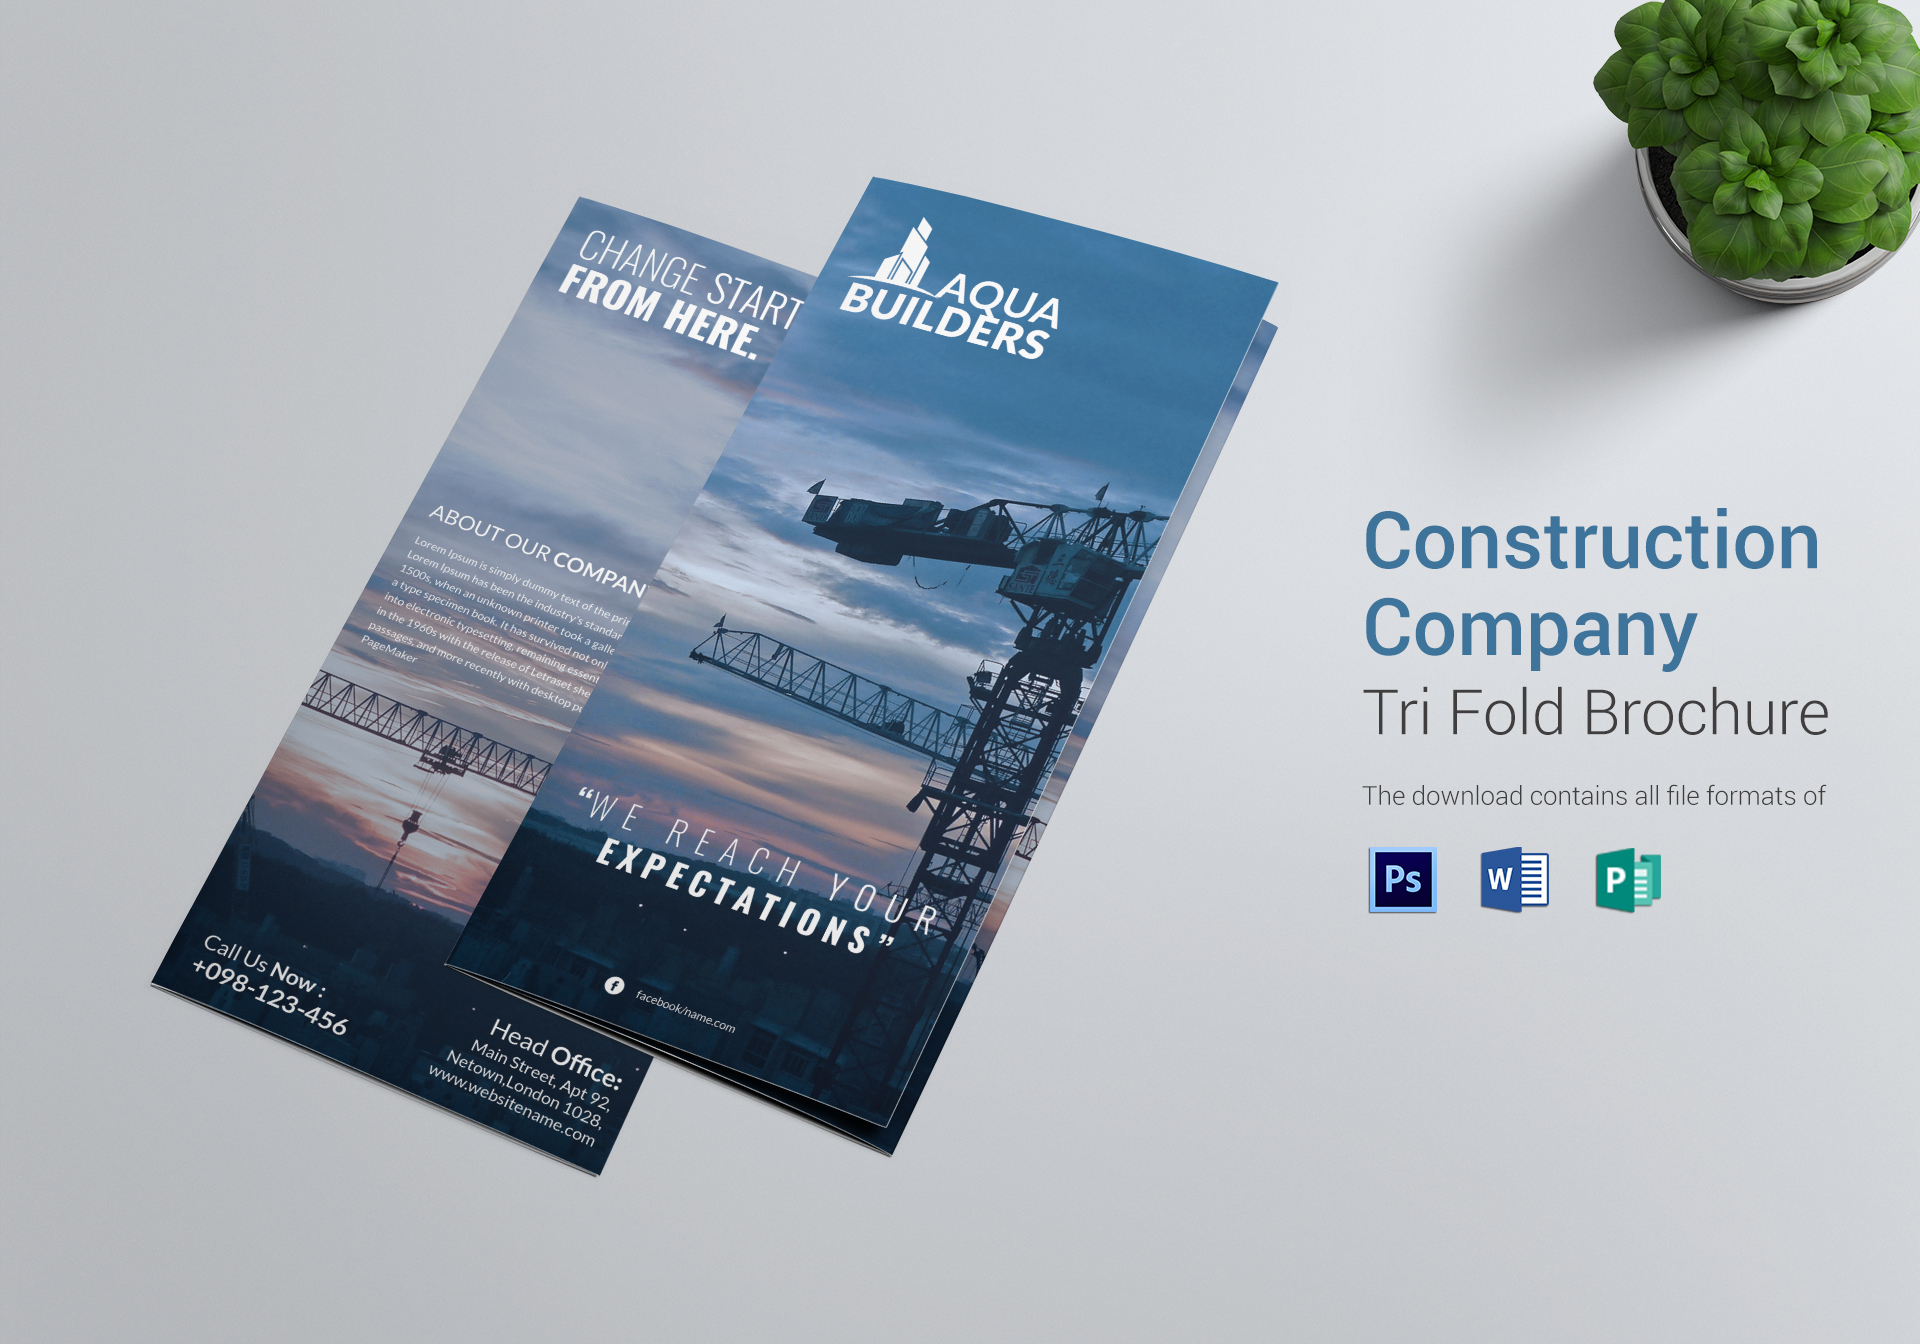 Construction company tri fold brochure design template in for Templates for tri fold brochures